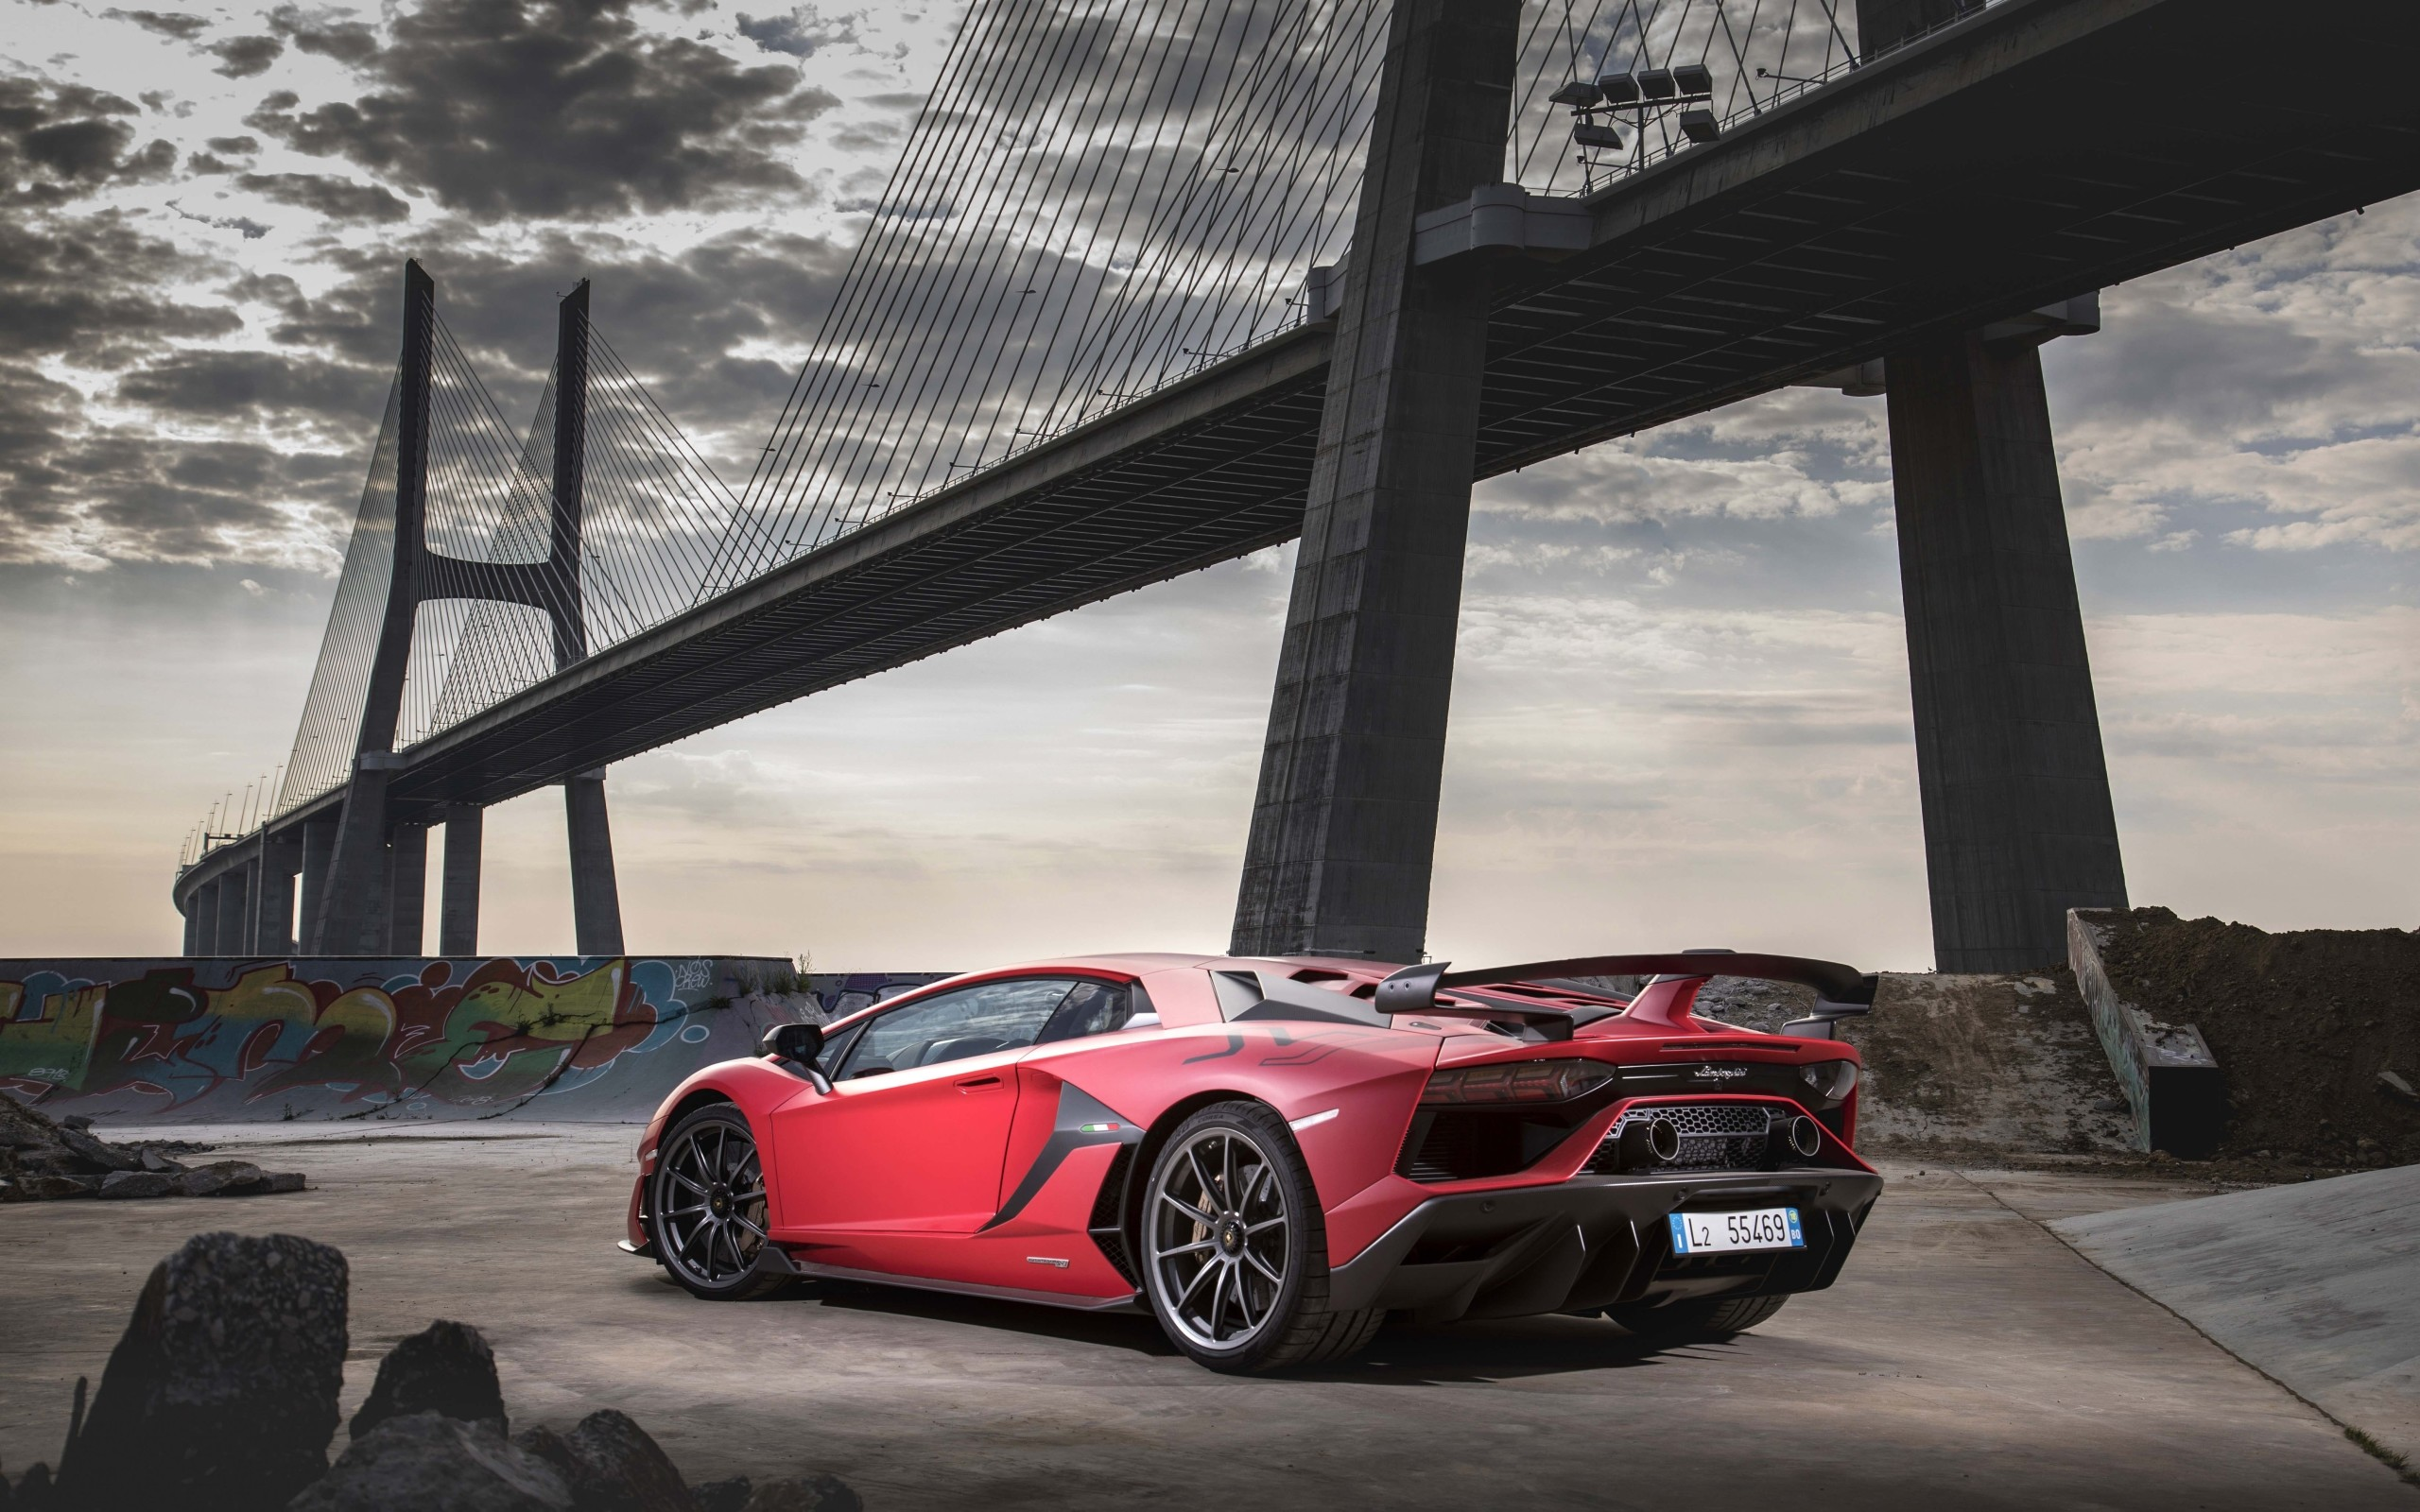 2560x1600 HD Wallpaper Lamborghini Aventador SVJ, Red, Car, SportCar